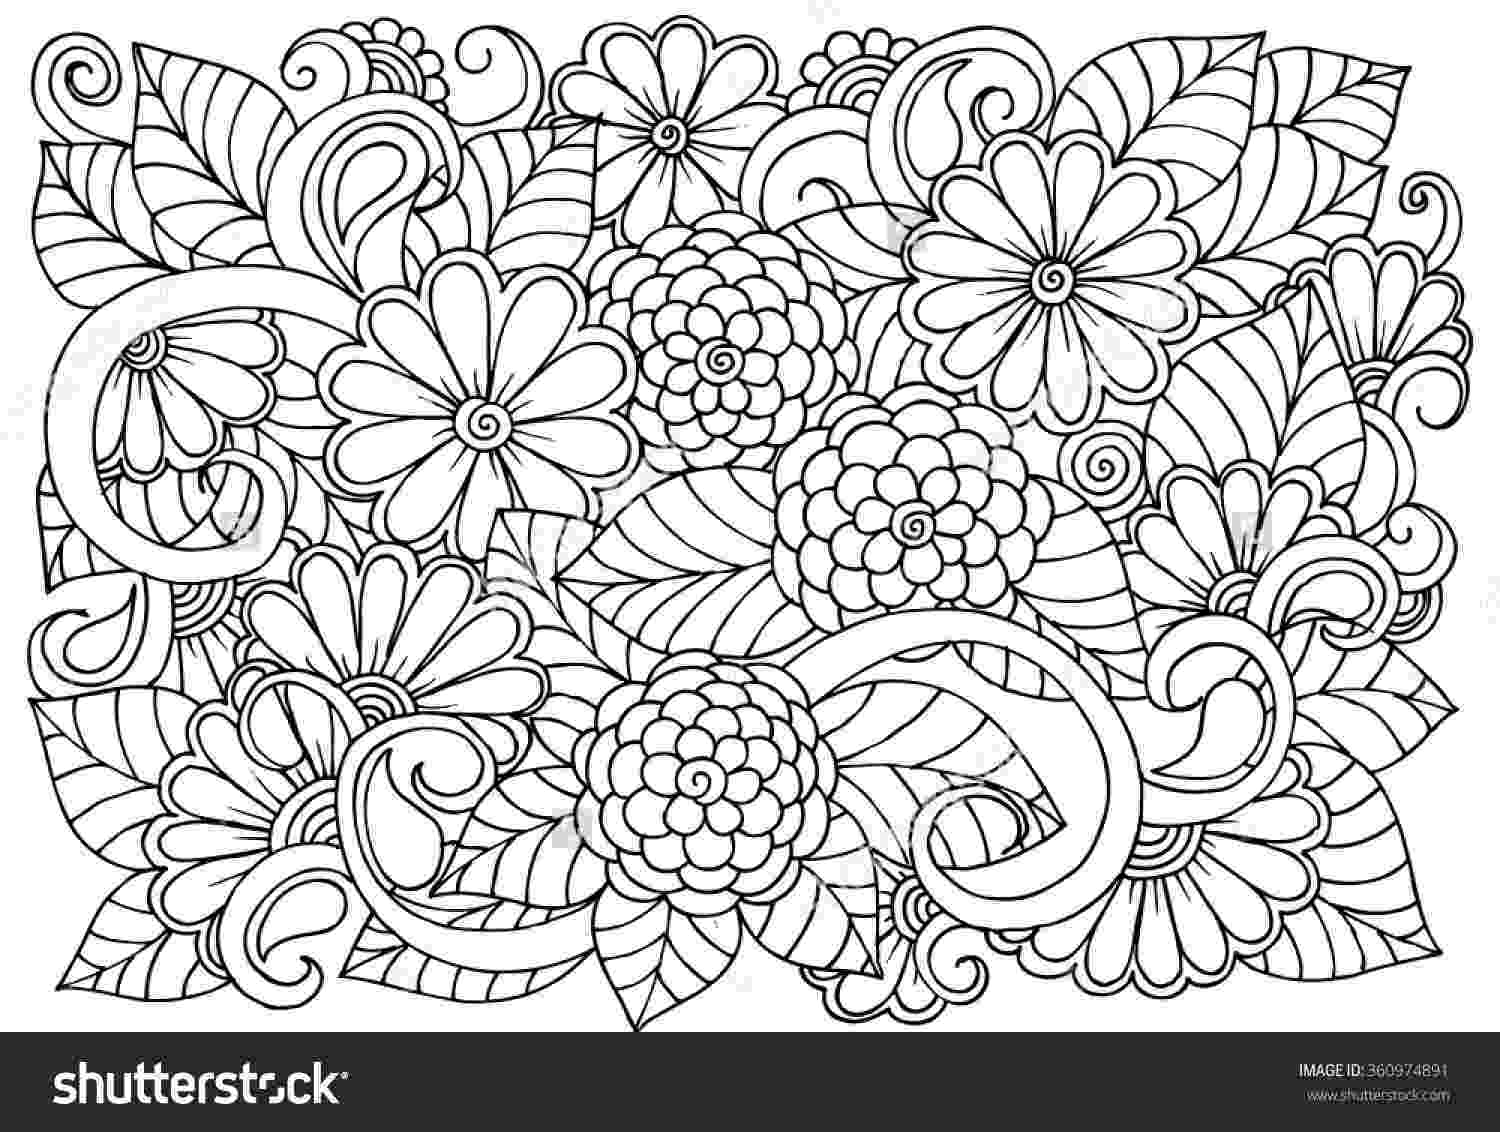 coloring patterns flowers floral pattern coloring page free printable coloring pages flowers coloring patterns